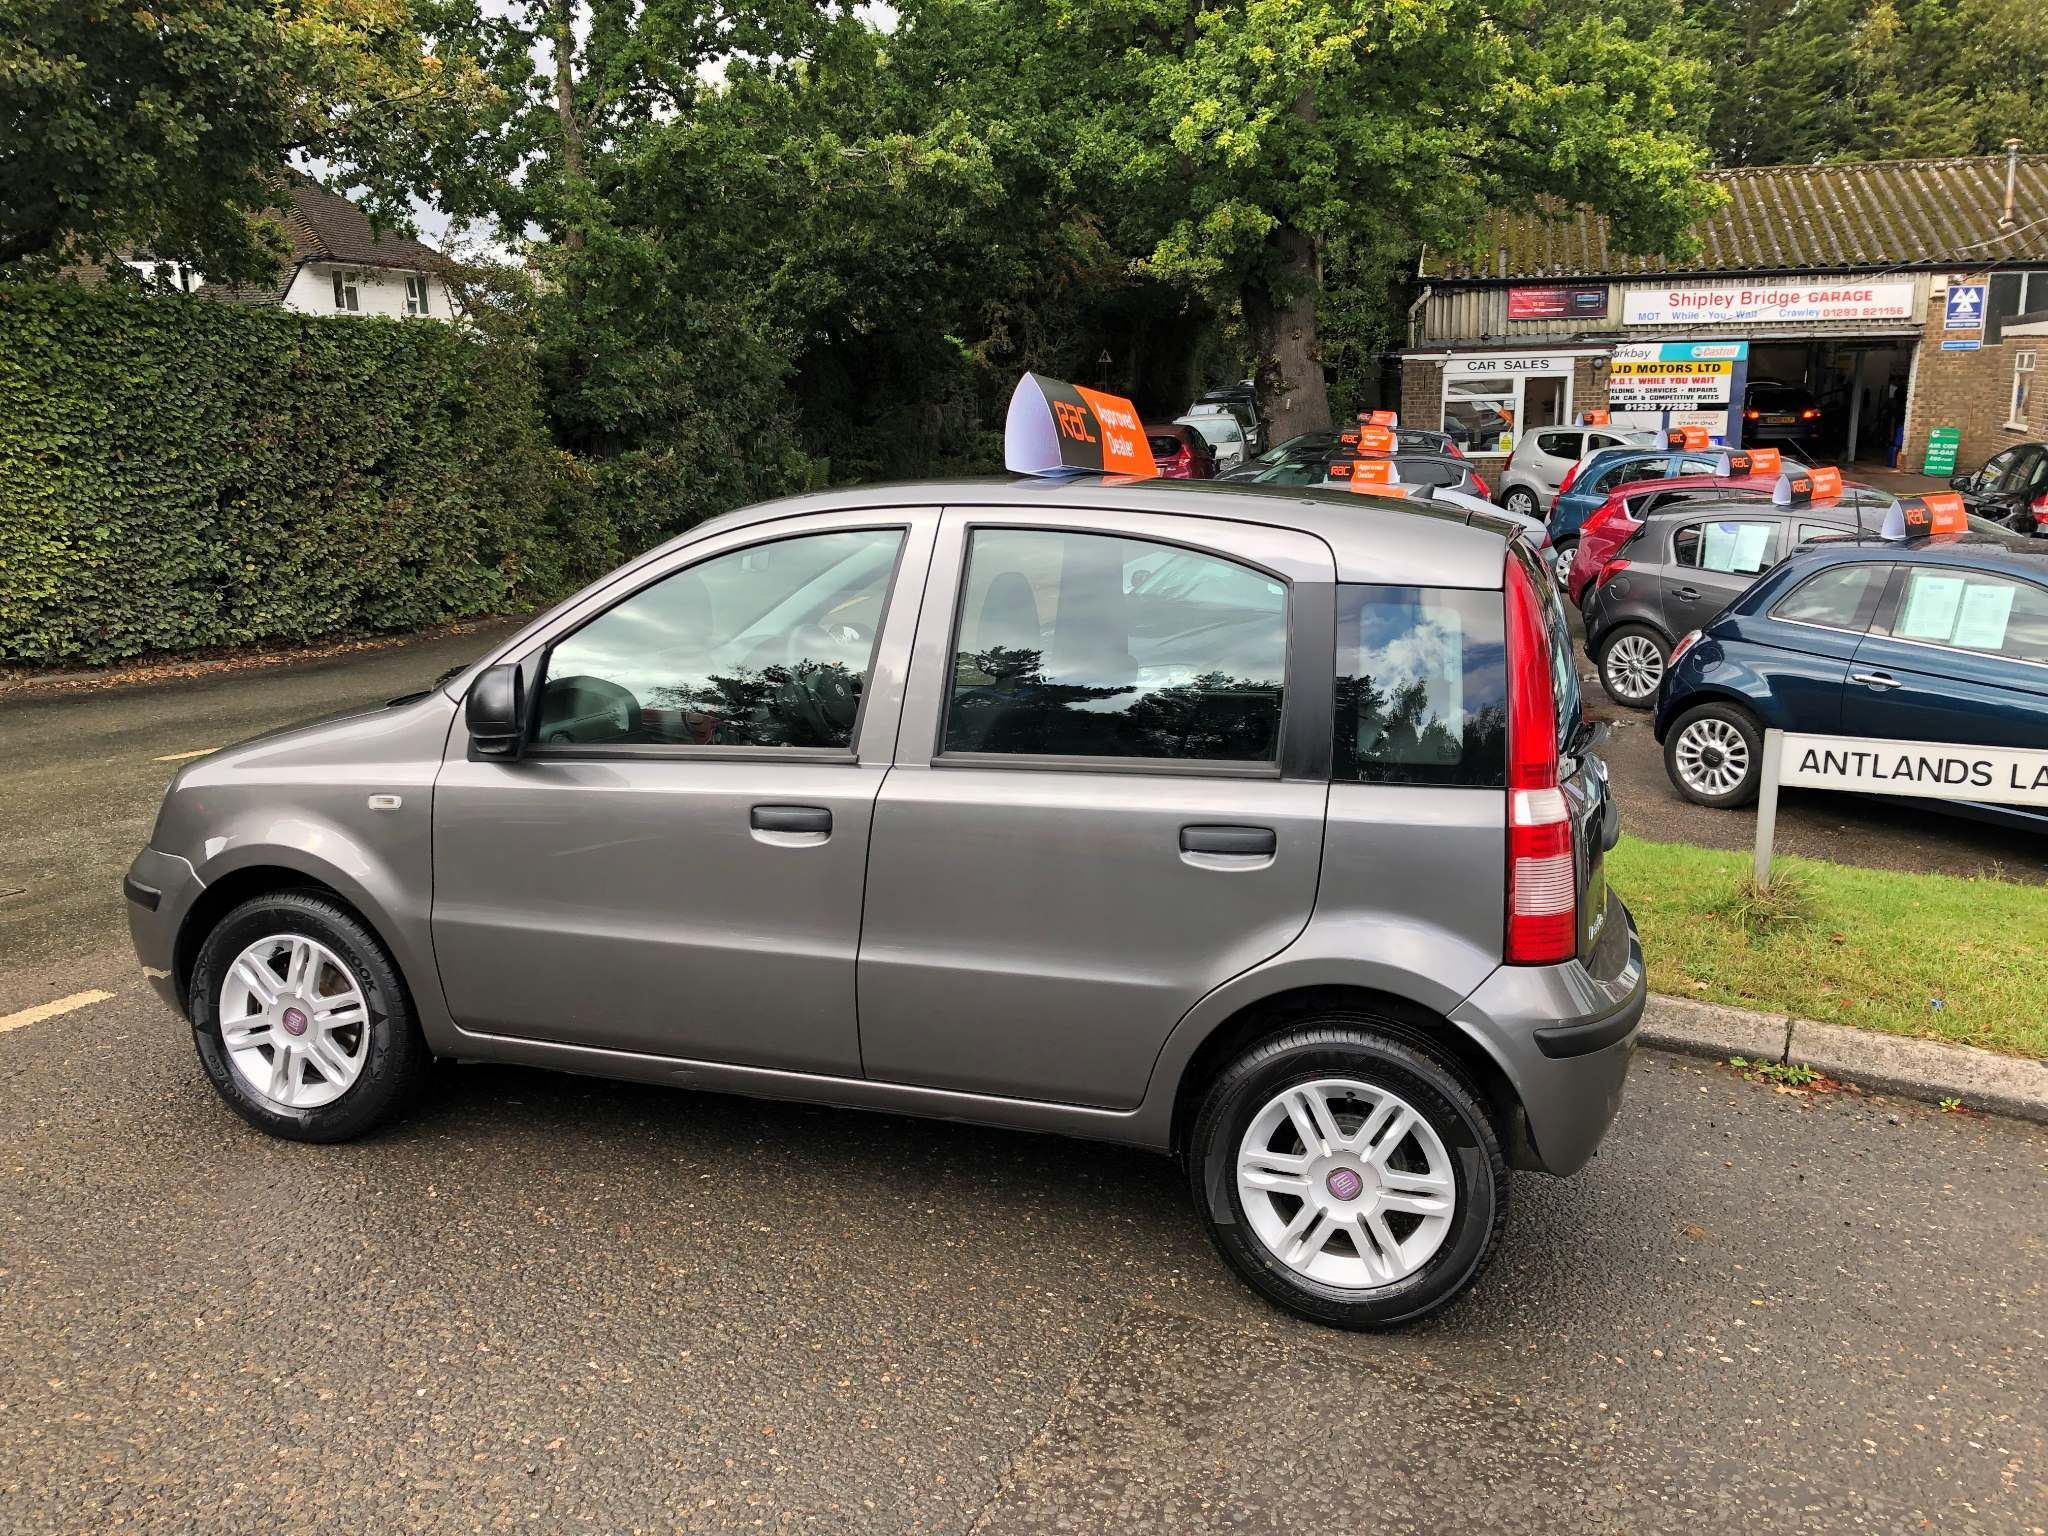 Used Fiat Panda for sale